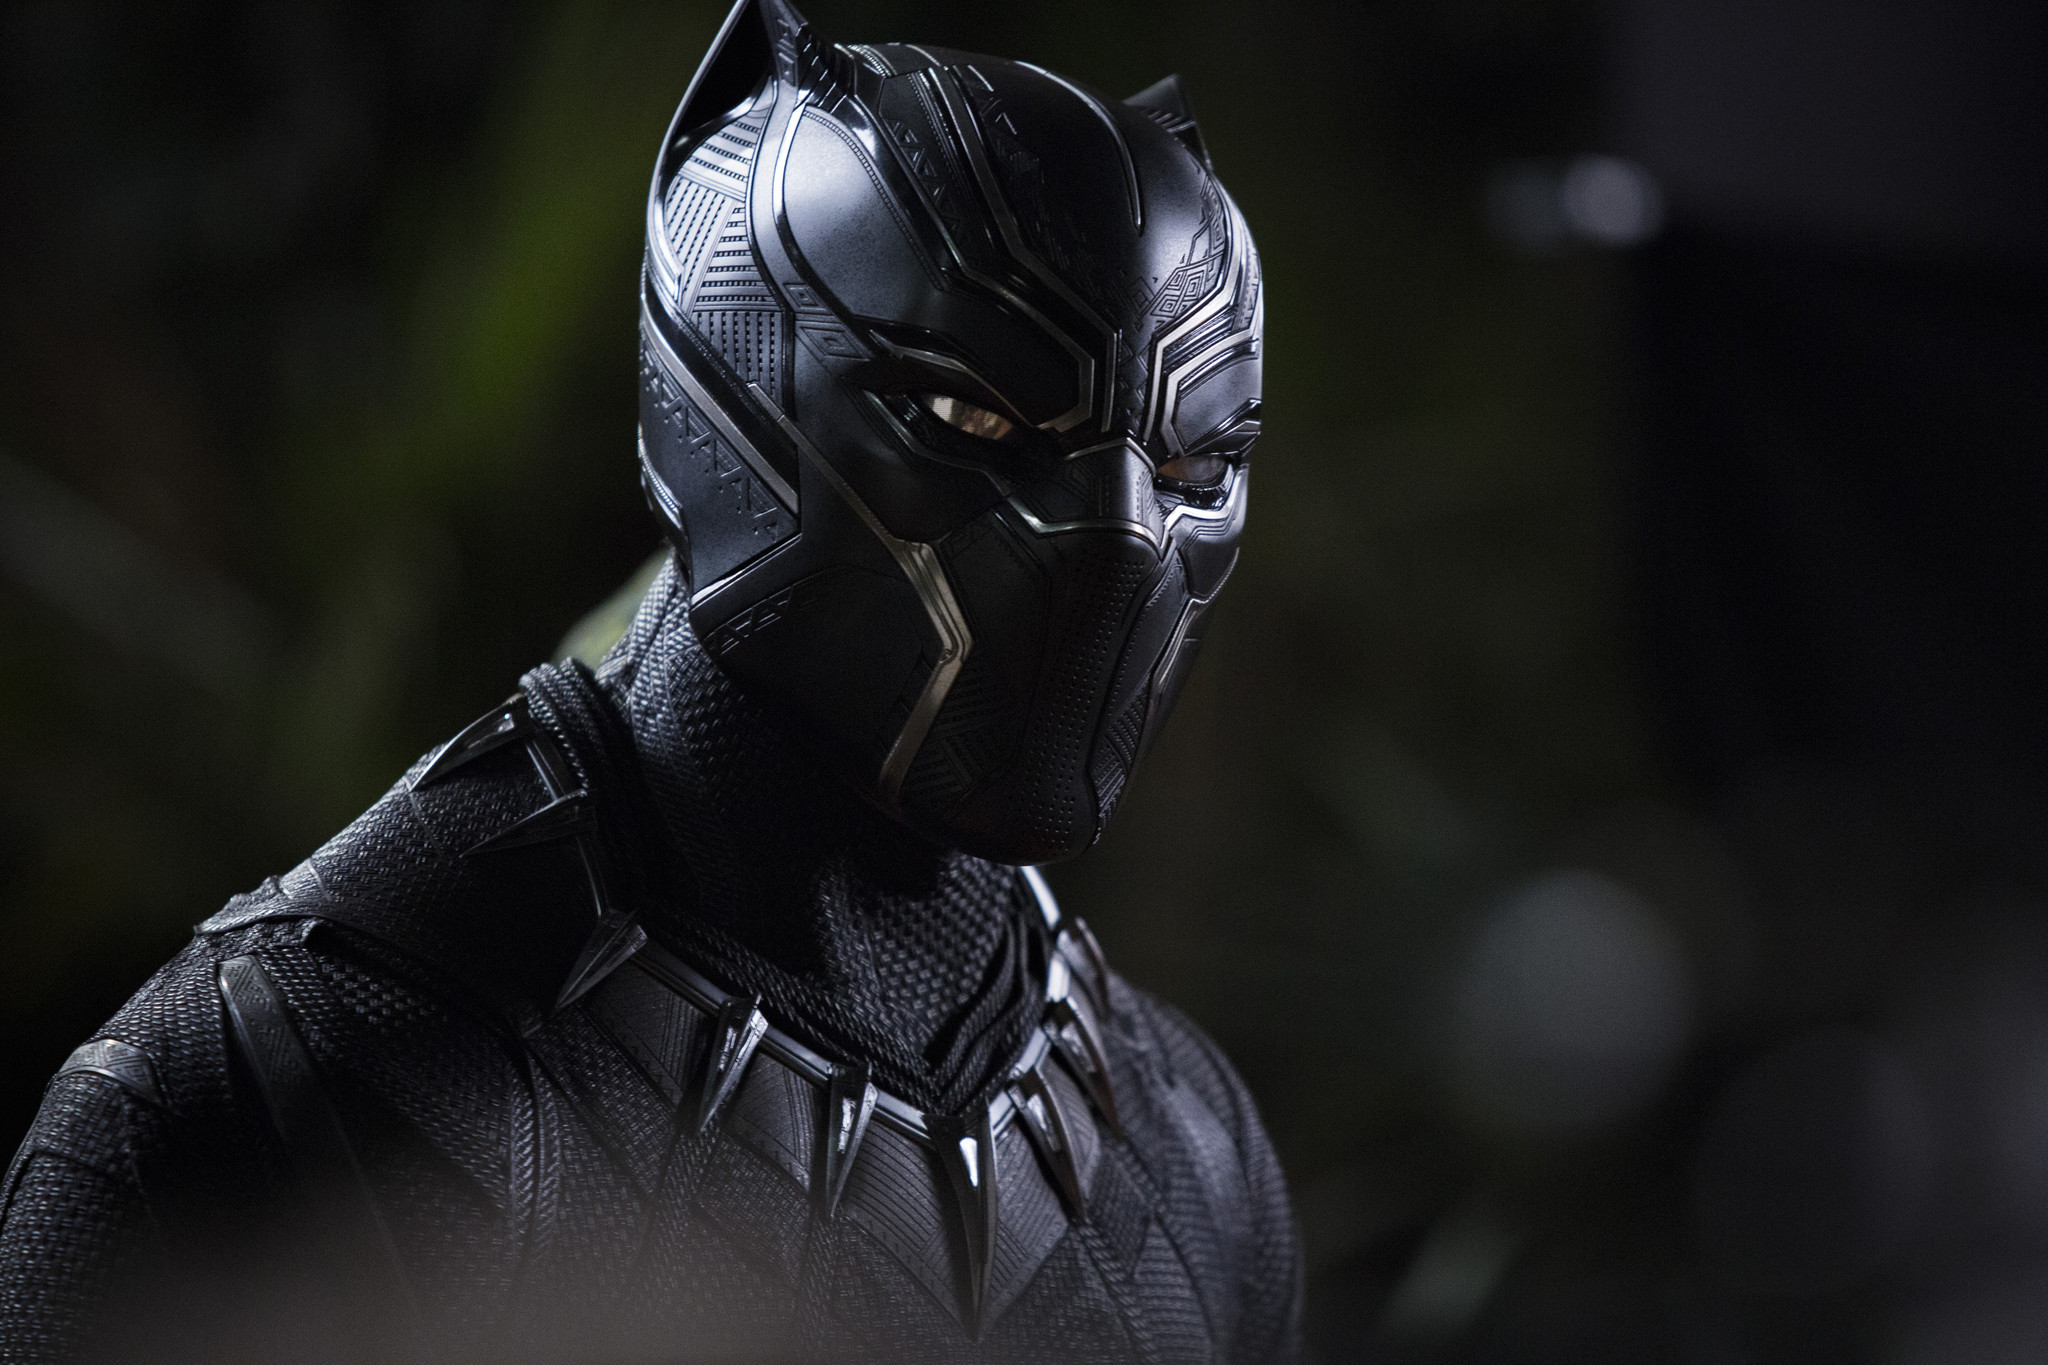 T'Challa/Black Panther (Chadwick Boseman)in a scene from Marvel's